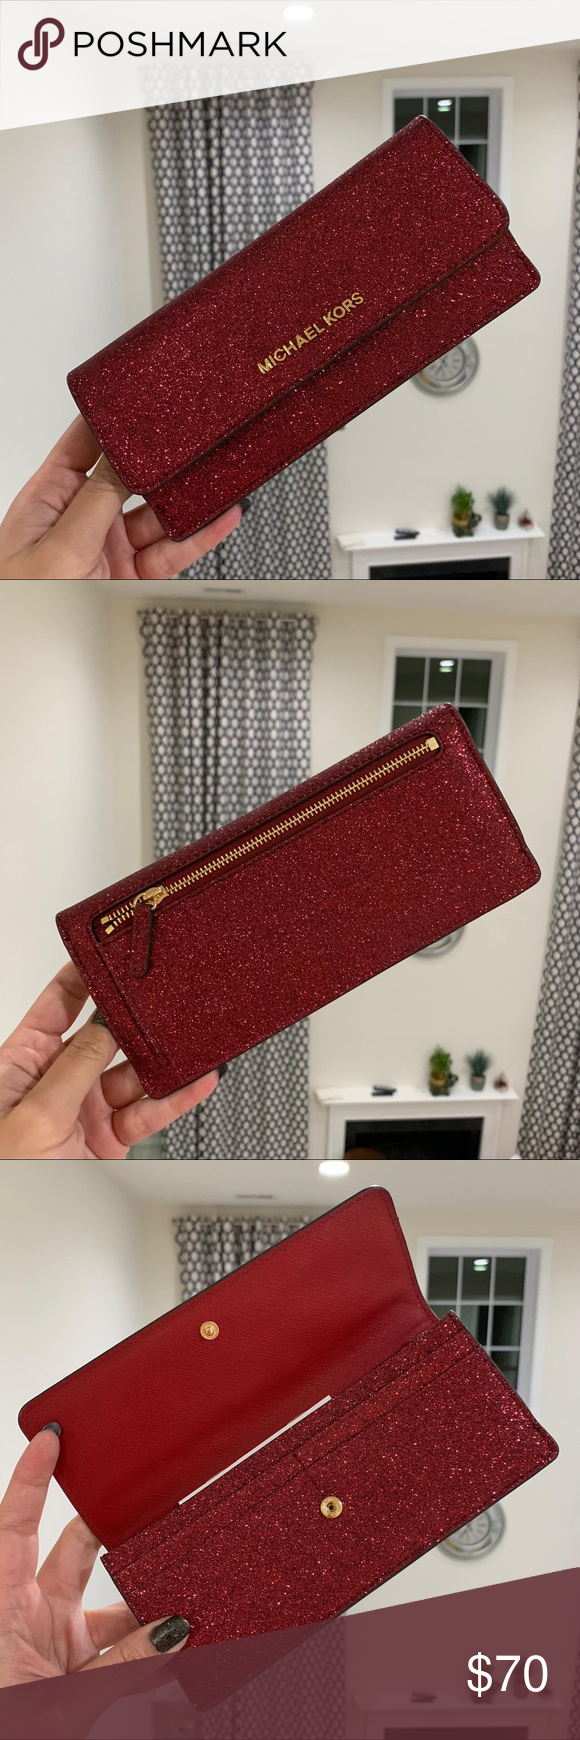 40e9ccb1f16ff1 Michael Kors Giftable Flat Wallet Price is my Firm 100% Authentic MK Michael  Kors Giftable